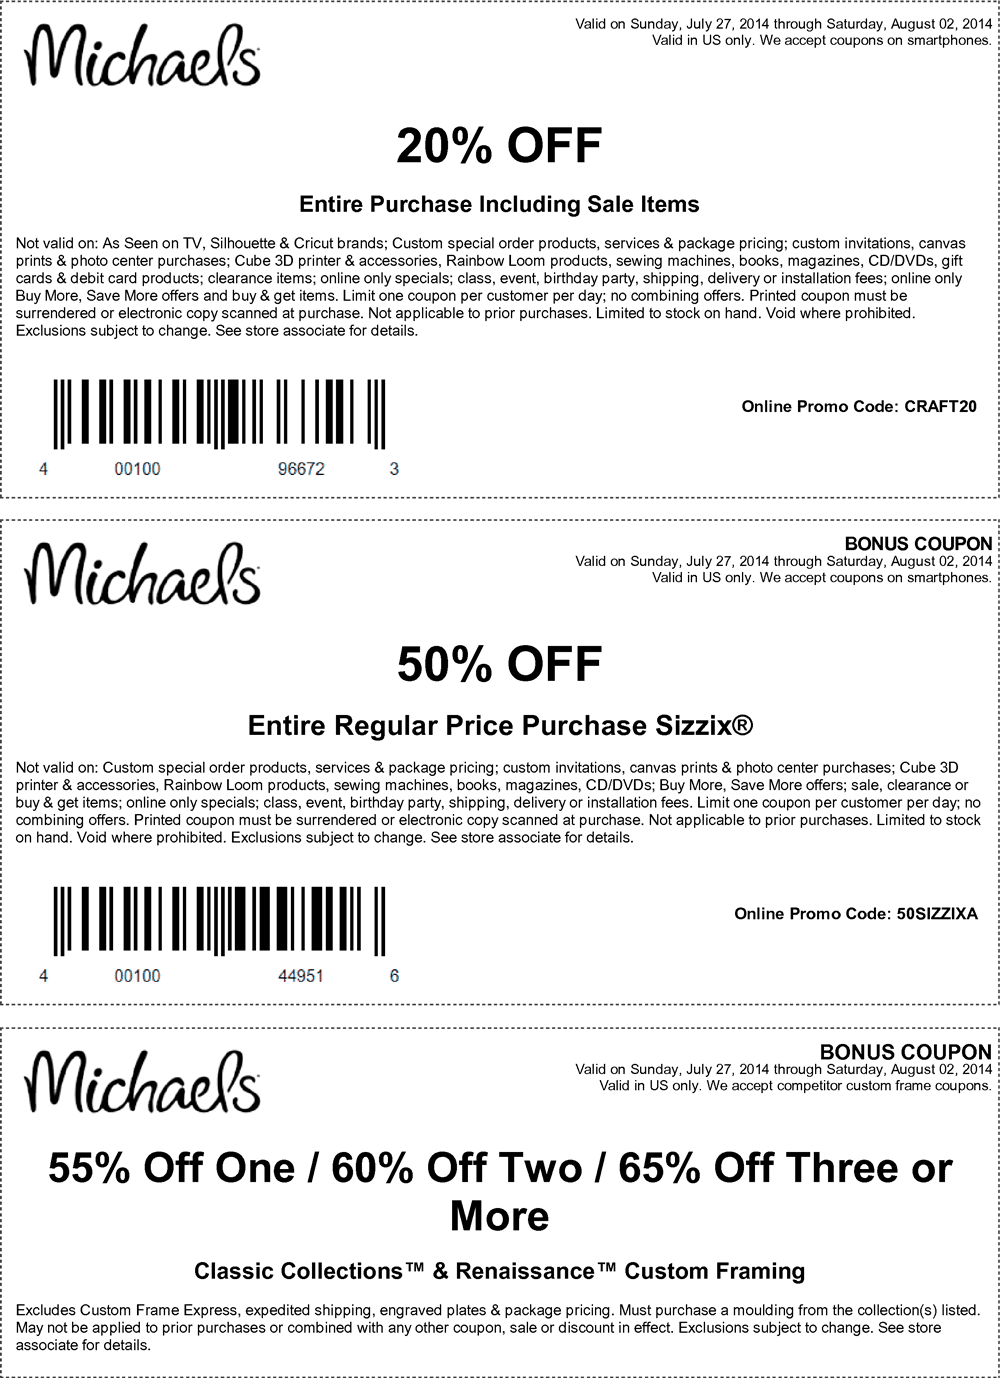 Michaels Custom Framing Coupon | www.topsimages.com